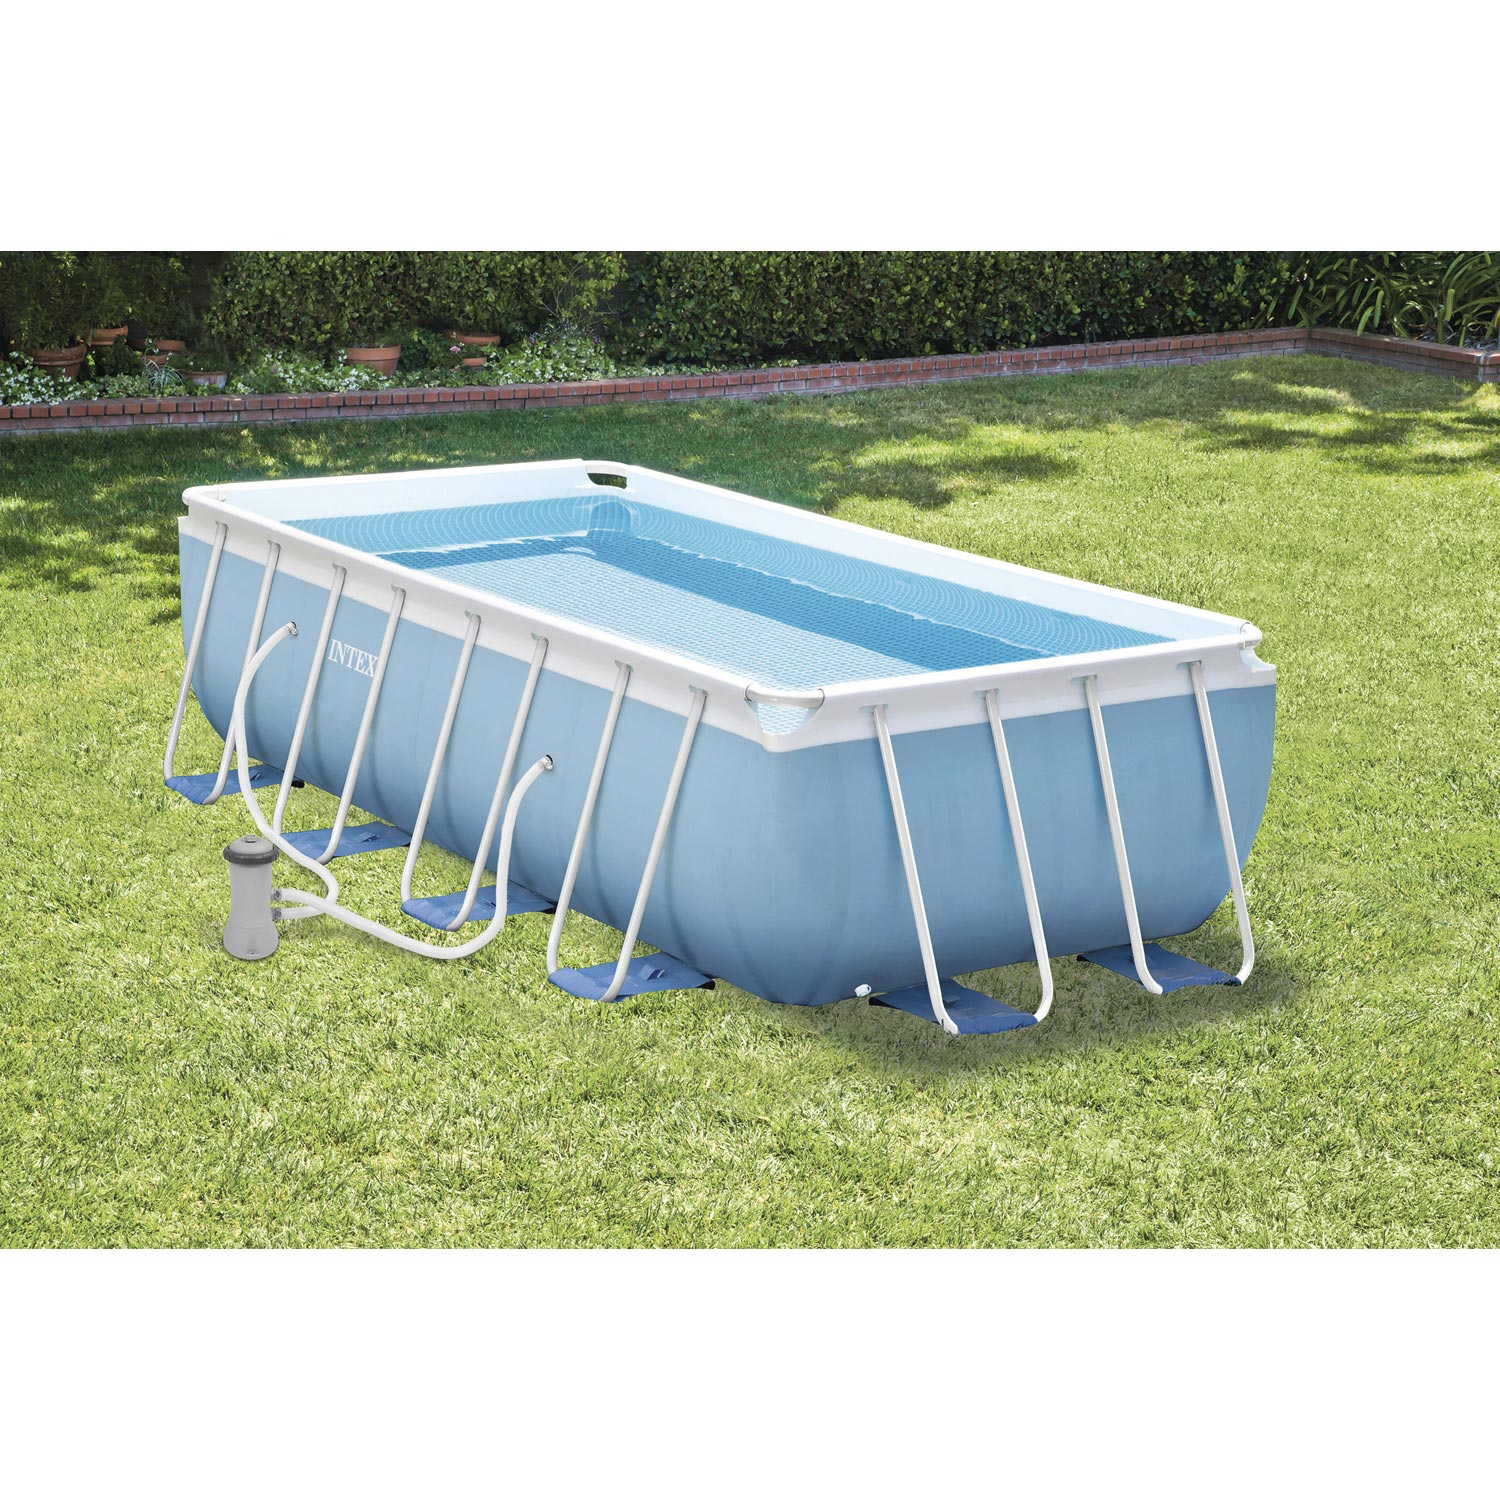 Piscine hors sol autoportante tubulaire prism frame intex for Margelle piscine hors sol leroy merlin